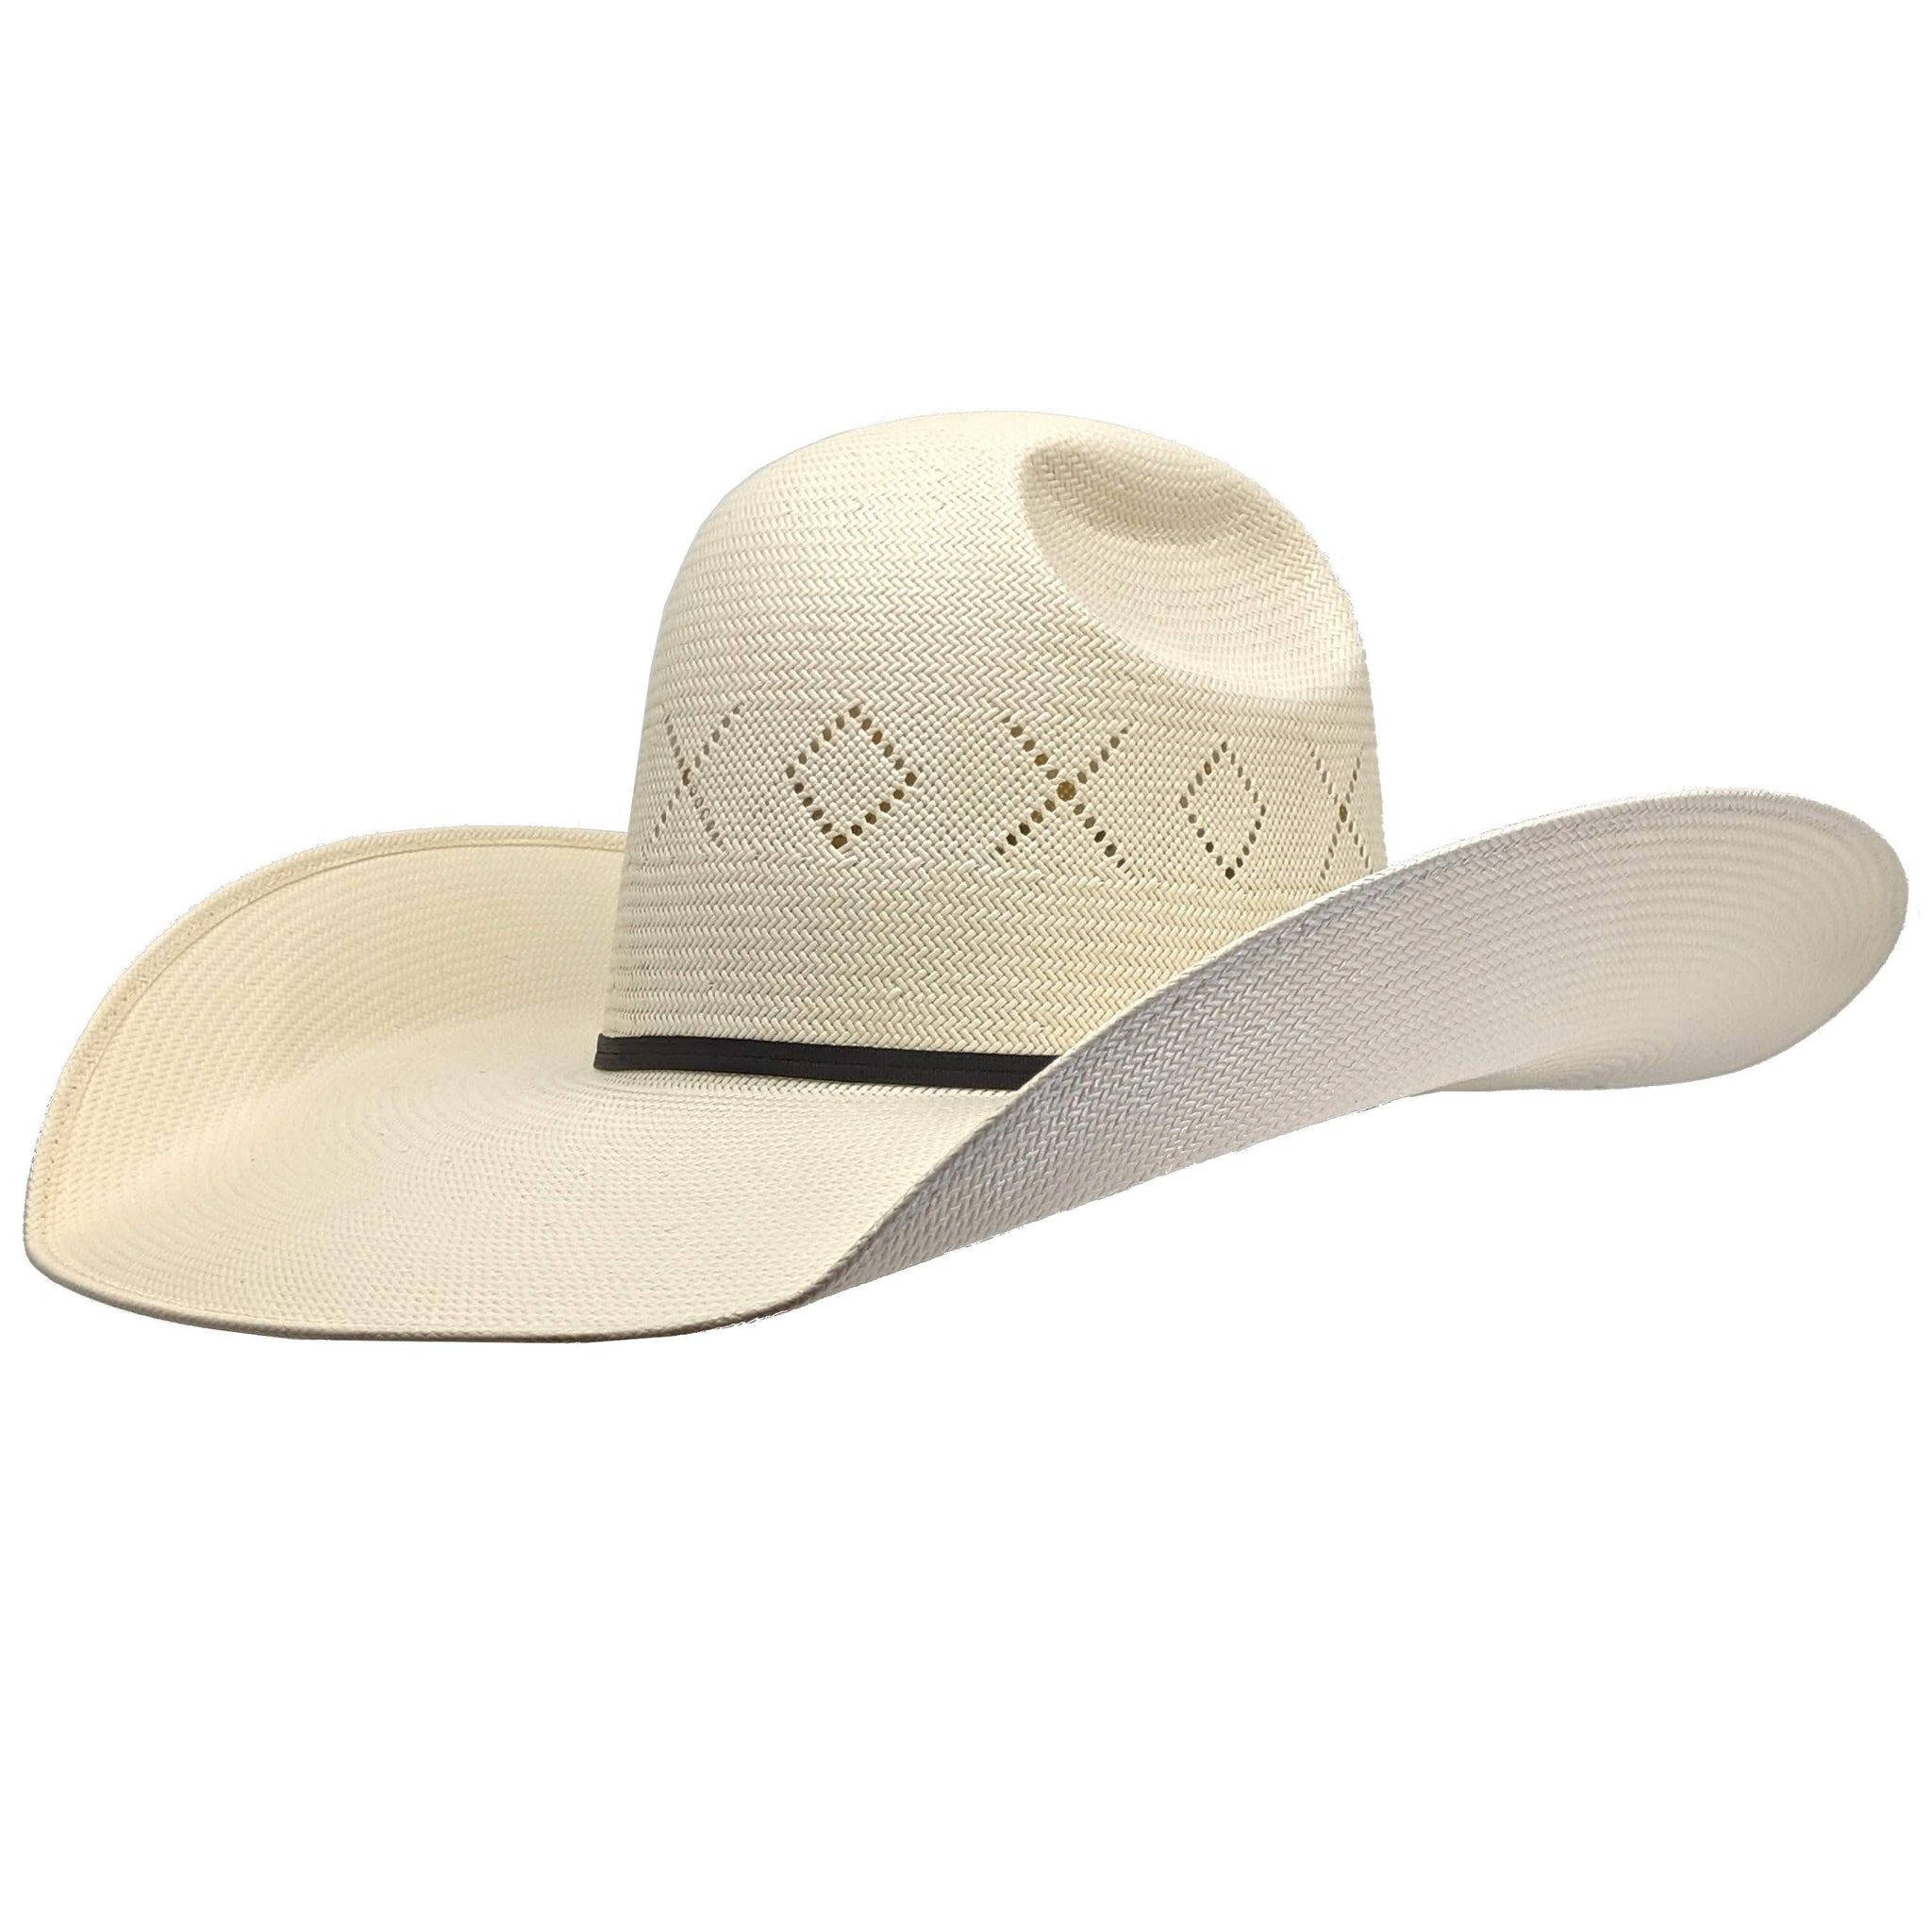 "Twister Natural Shantung Straw Cowboy Hat (5"" Brim)"